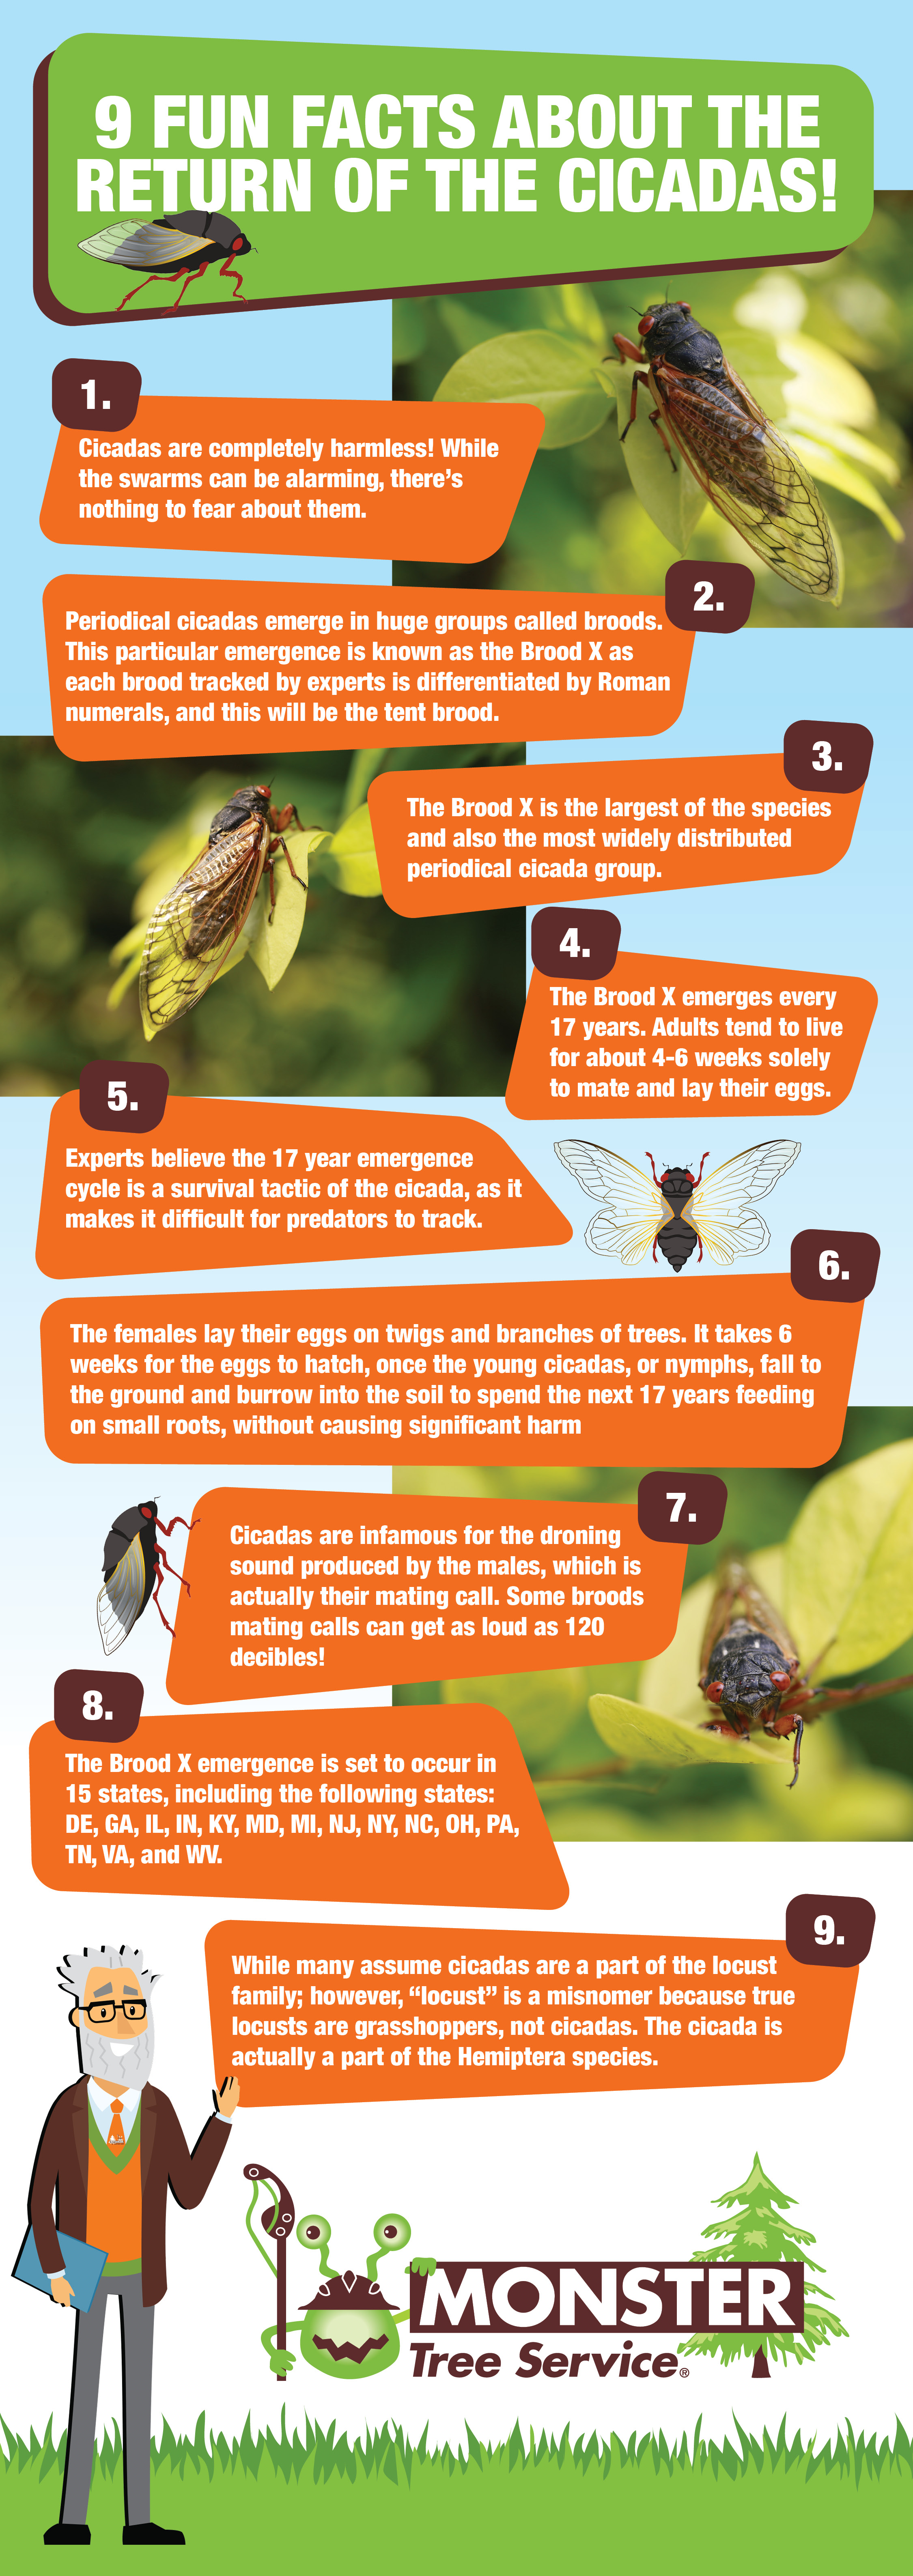 9 Fun Facts About Cicadas!